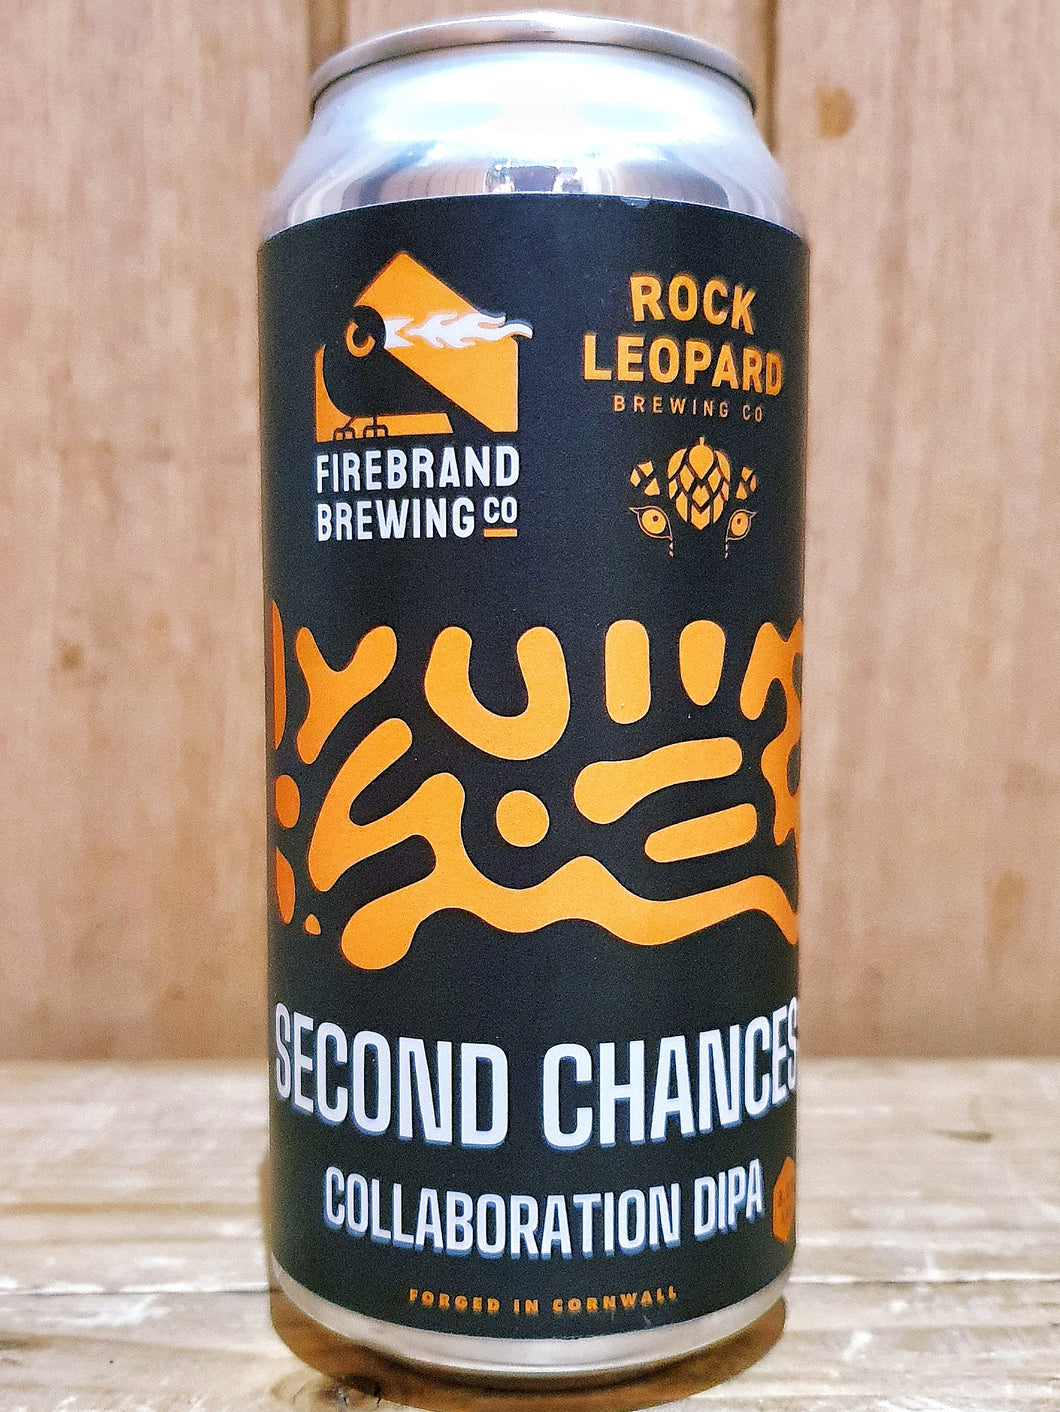 Firebrand Brewing Co - Second Chances